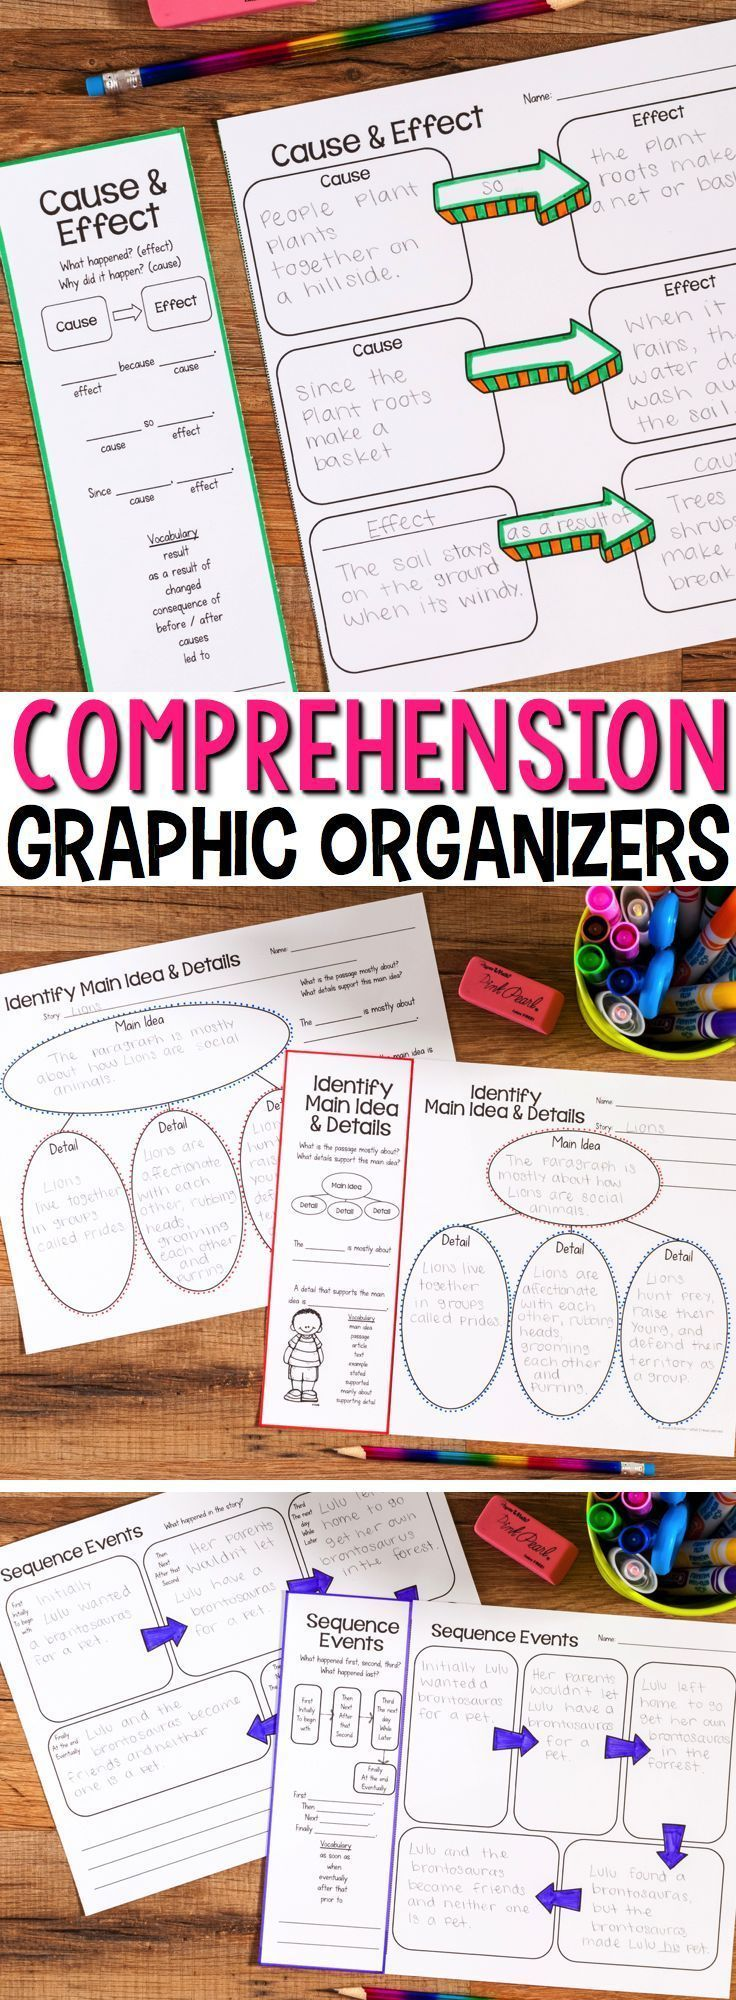 comprehension strategy instruction definition